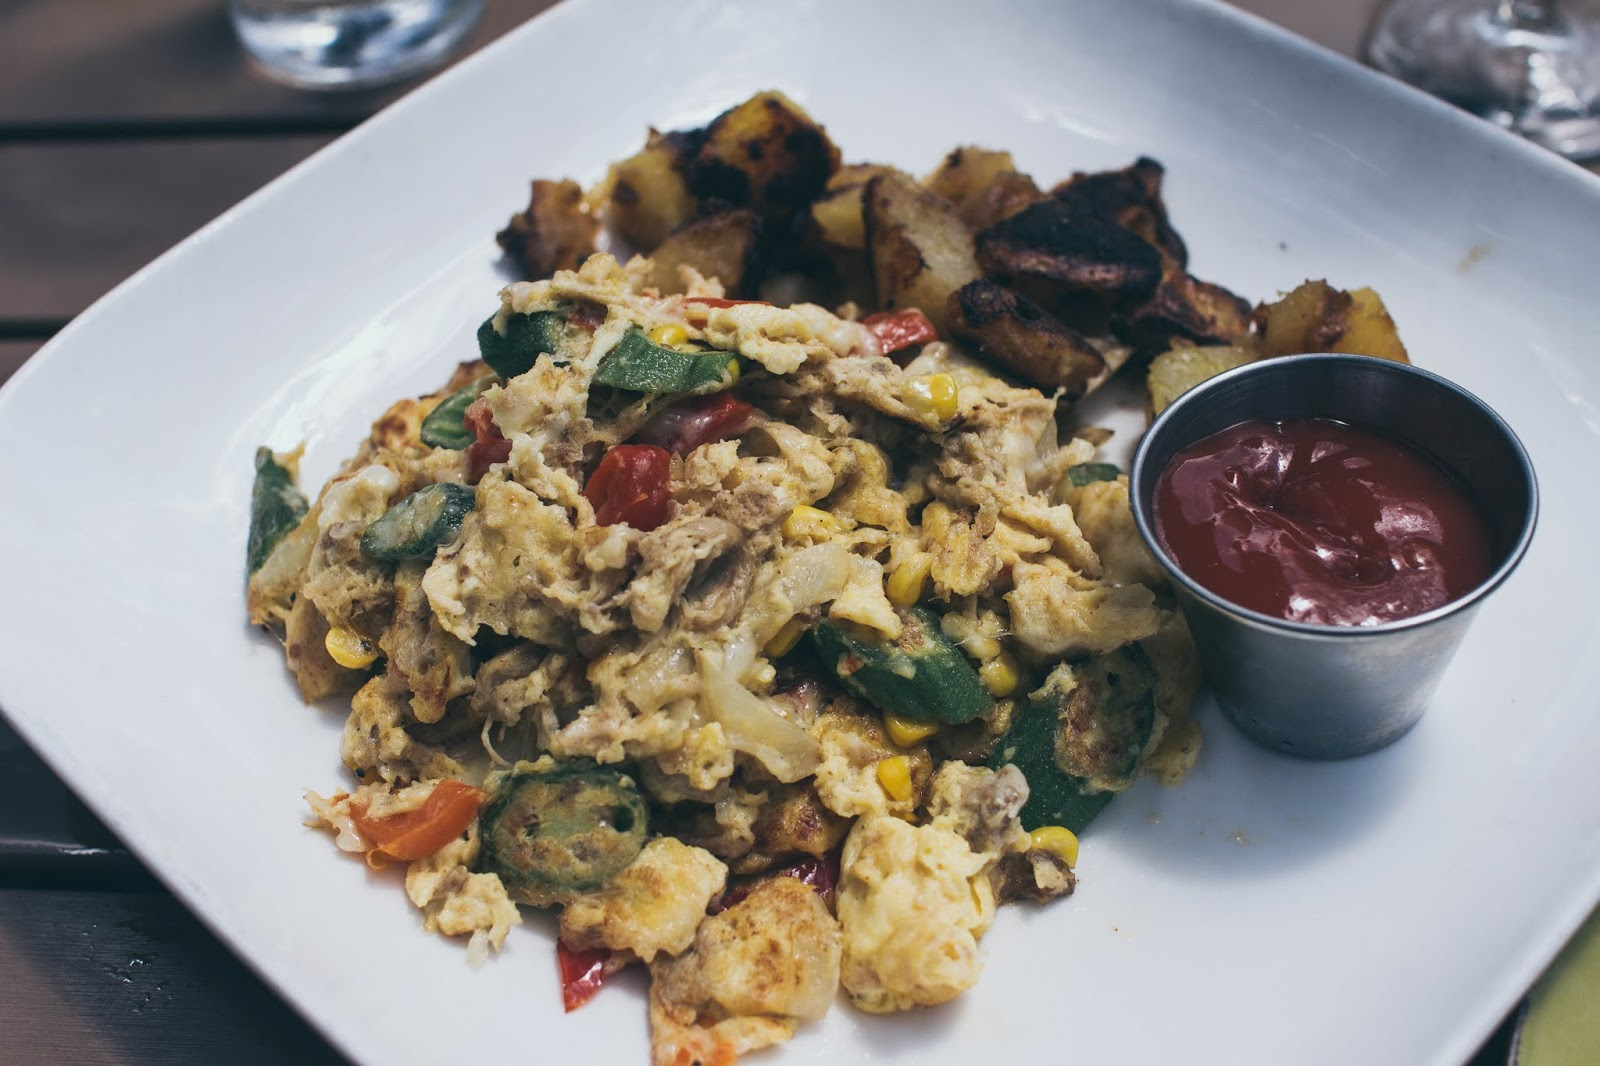 dc-brunch-due-south-pulled-pork-scramble-blogger-avizastyle-andrea-viza